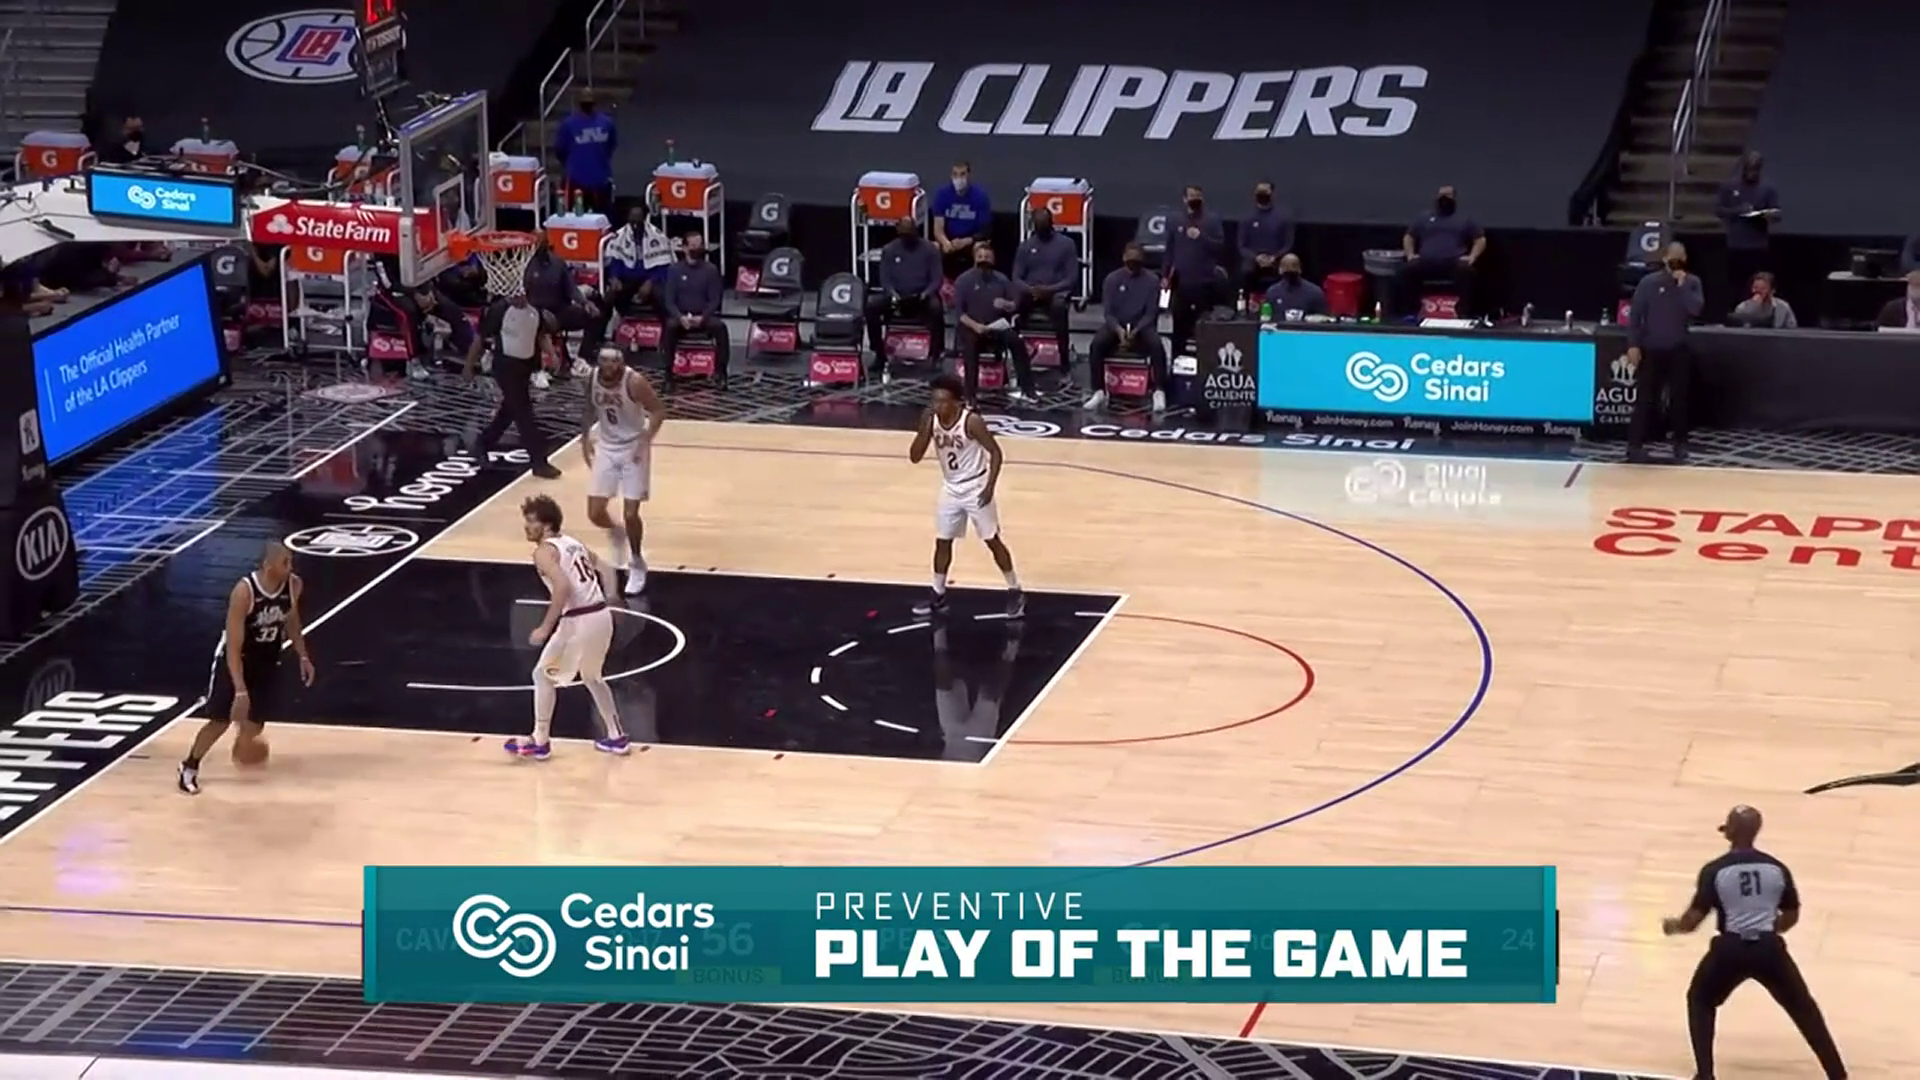 Cedars-Sinai Preventive Play of the Game | Clippers vs Cavaliers (2.14.21)